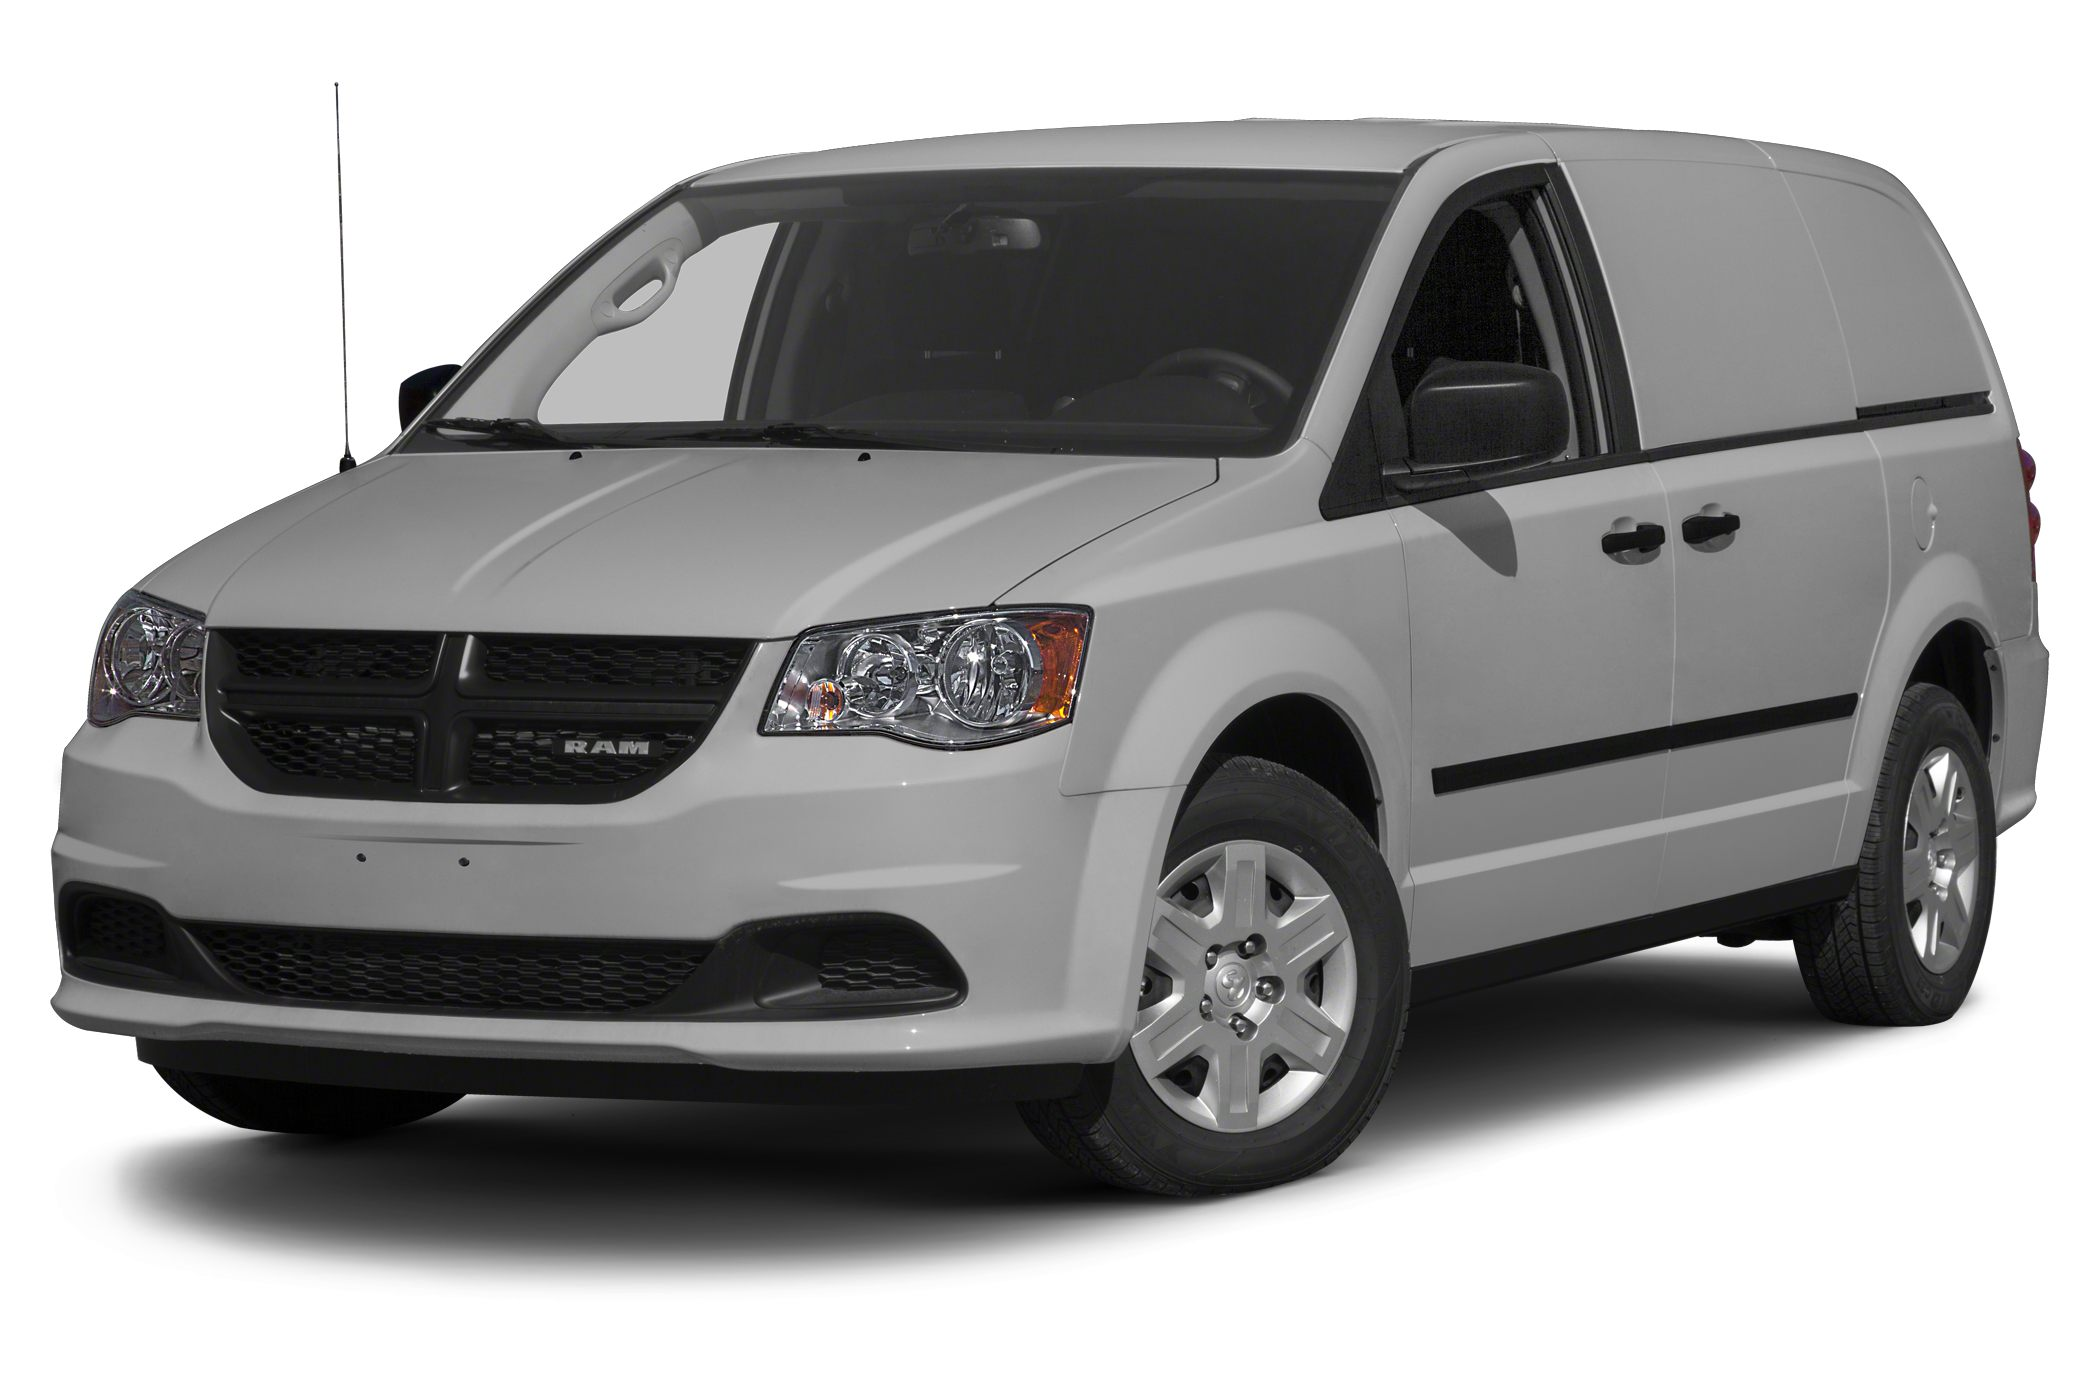 2012 RAM Cargo C/V Cargo Van for sale in Lockport for $12,995 with 53,803 miles.